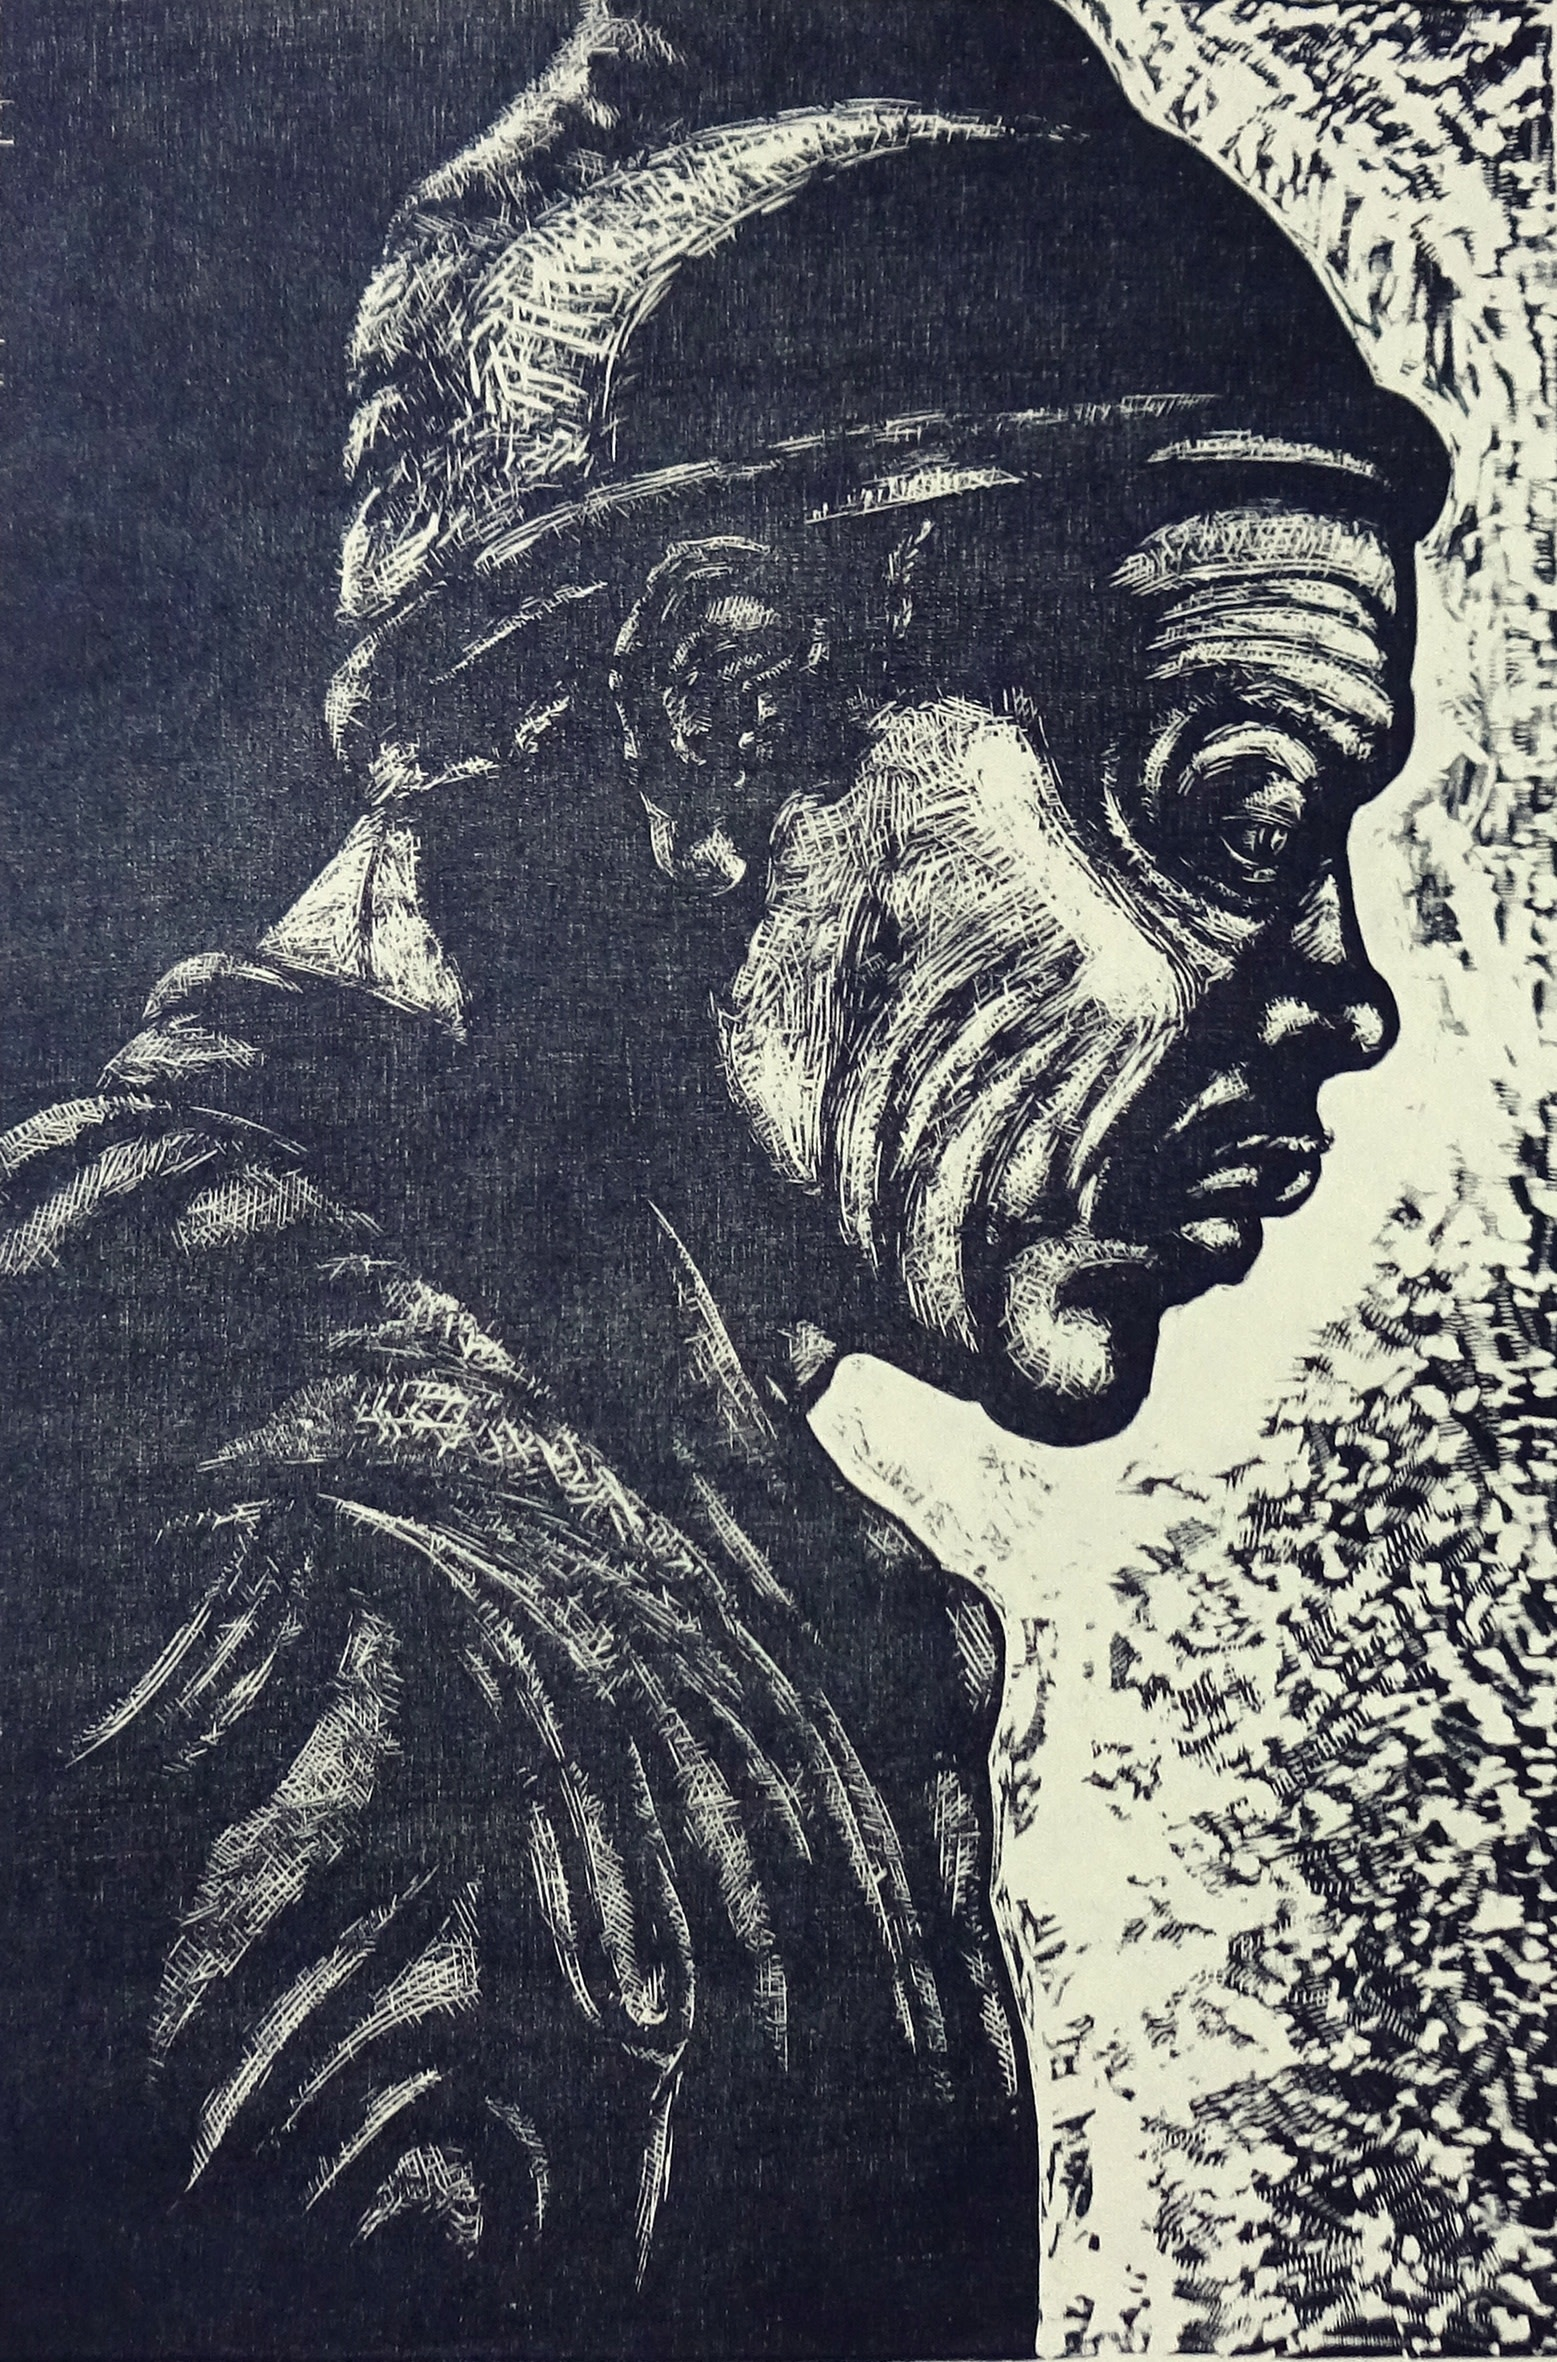 """<span class=""""link fancybox-details-link""""><a href=""""/exhibitions/17/works/image_standalone805/"""">View Detail Page</a></span><p><strong>Jane Stobart</strong></p><p>Whitechapel Waiting III</p><p>woodcut, ed of 5</p><p>75 x 63cm</p><p>£360 framed</p><p>£290 unframed</p>"""